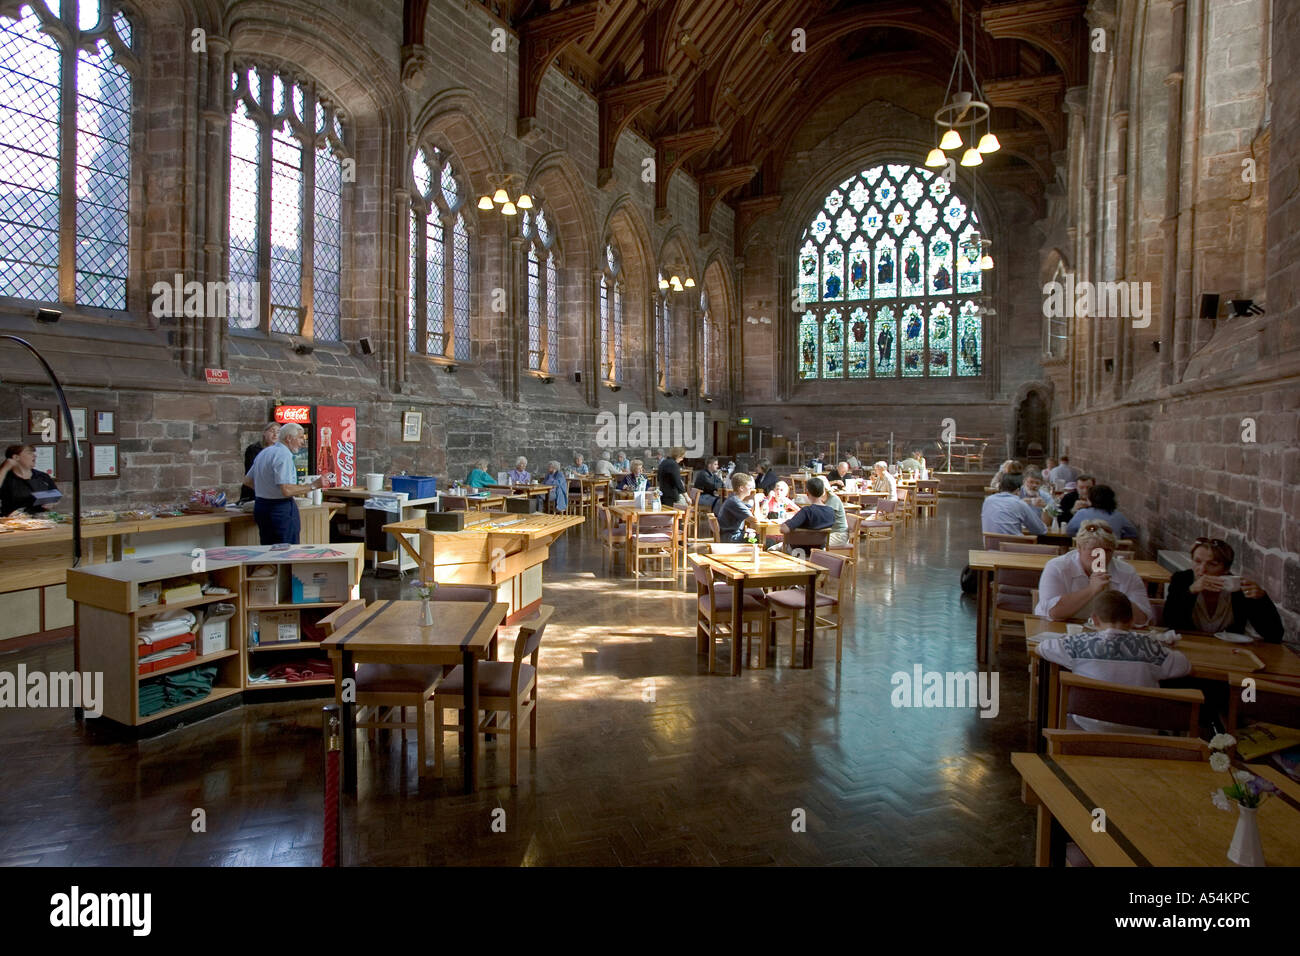 Chester, GBR, 23. Aug. 2005 - The Refectory Restaurant inside the Chester cathedral. - Stock Image